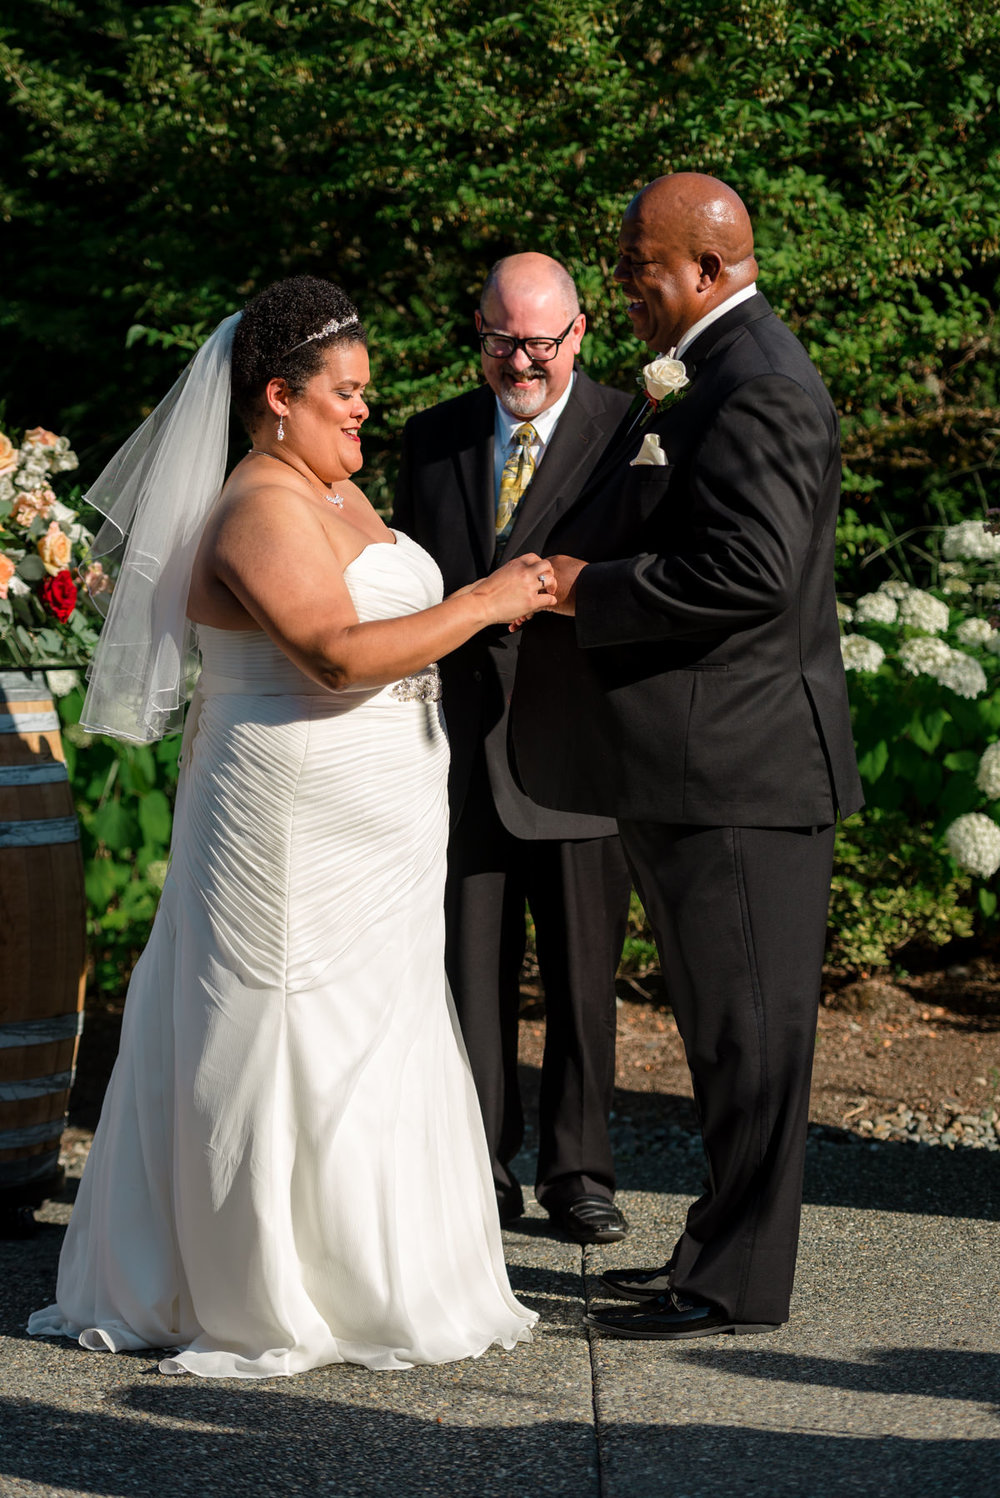 Andrew Tat - Documentary Wedding Photography - Columbia Winery - Woodinville, Washington -Patricia & Teffin - 14.jpg